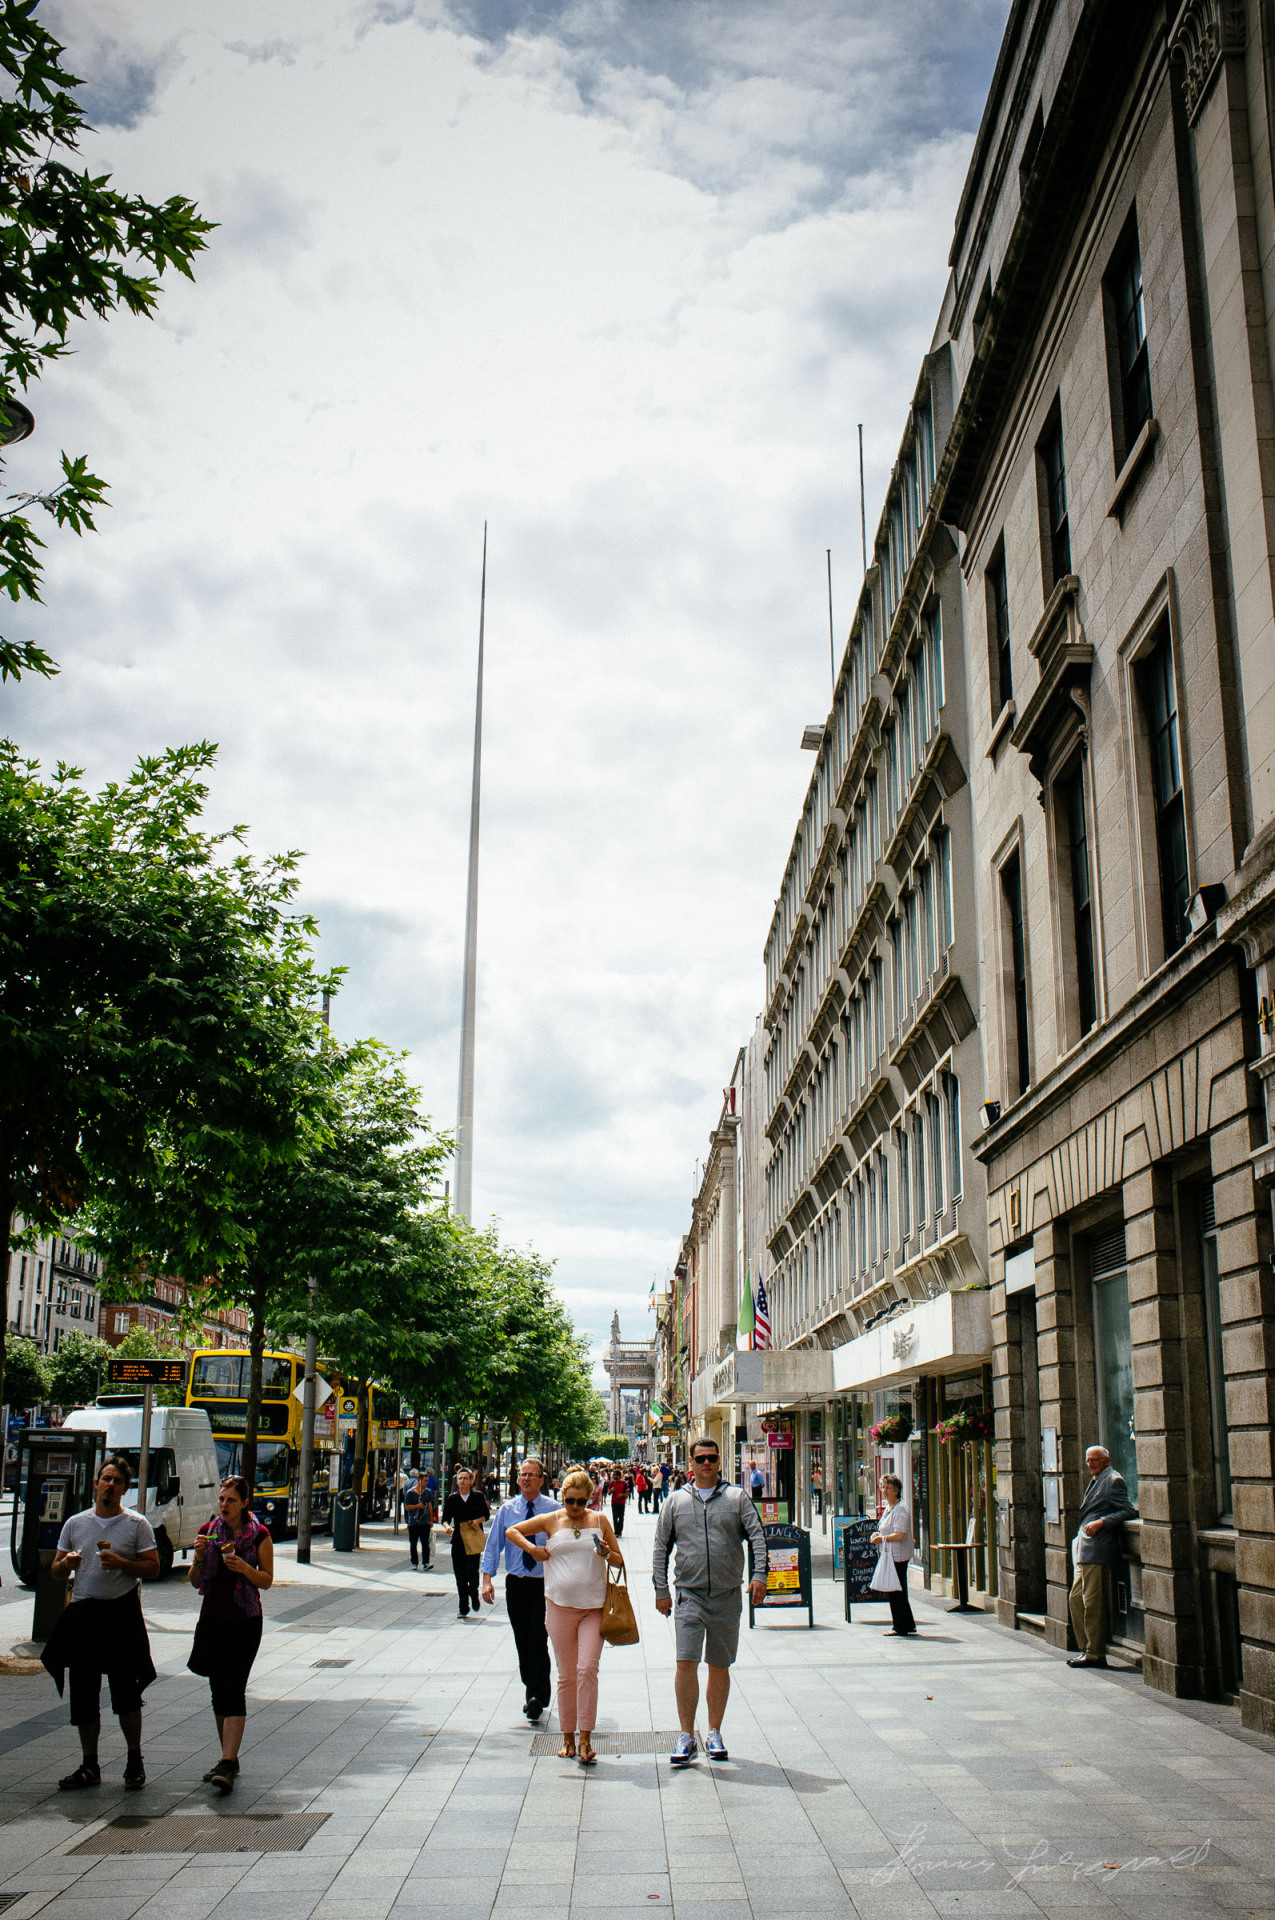 The Spire stretching up over O'Connell Street